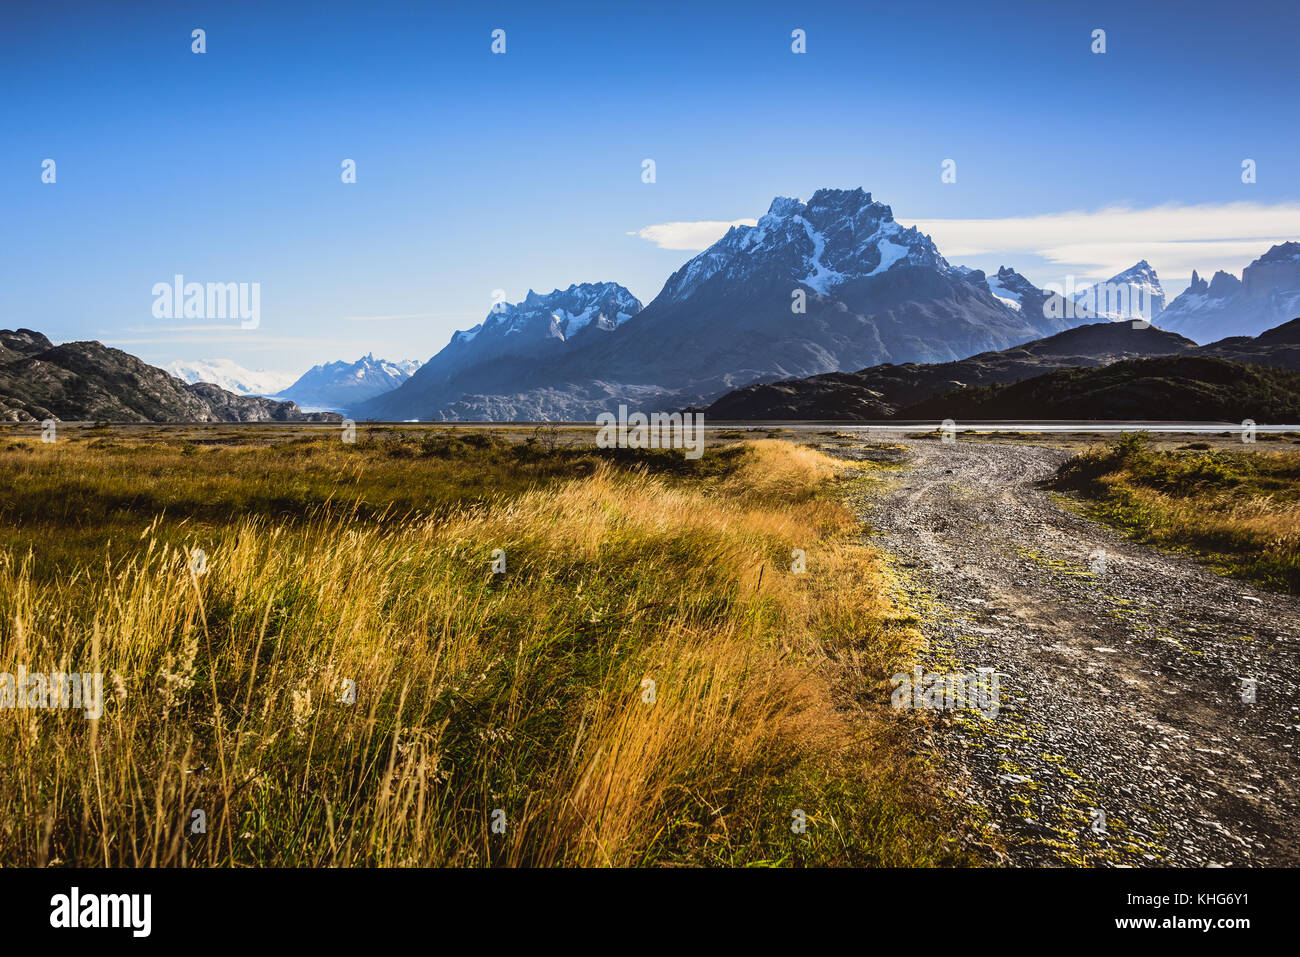 Gravel road to the mountains in Torres Del Paine, chile - Stock Image